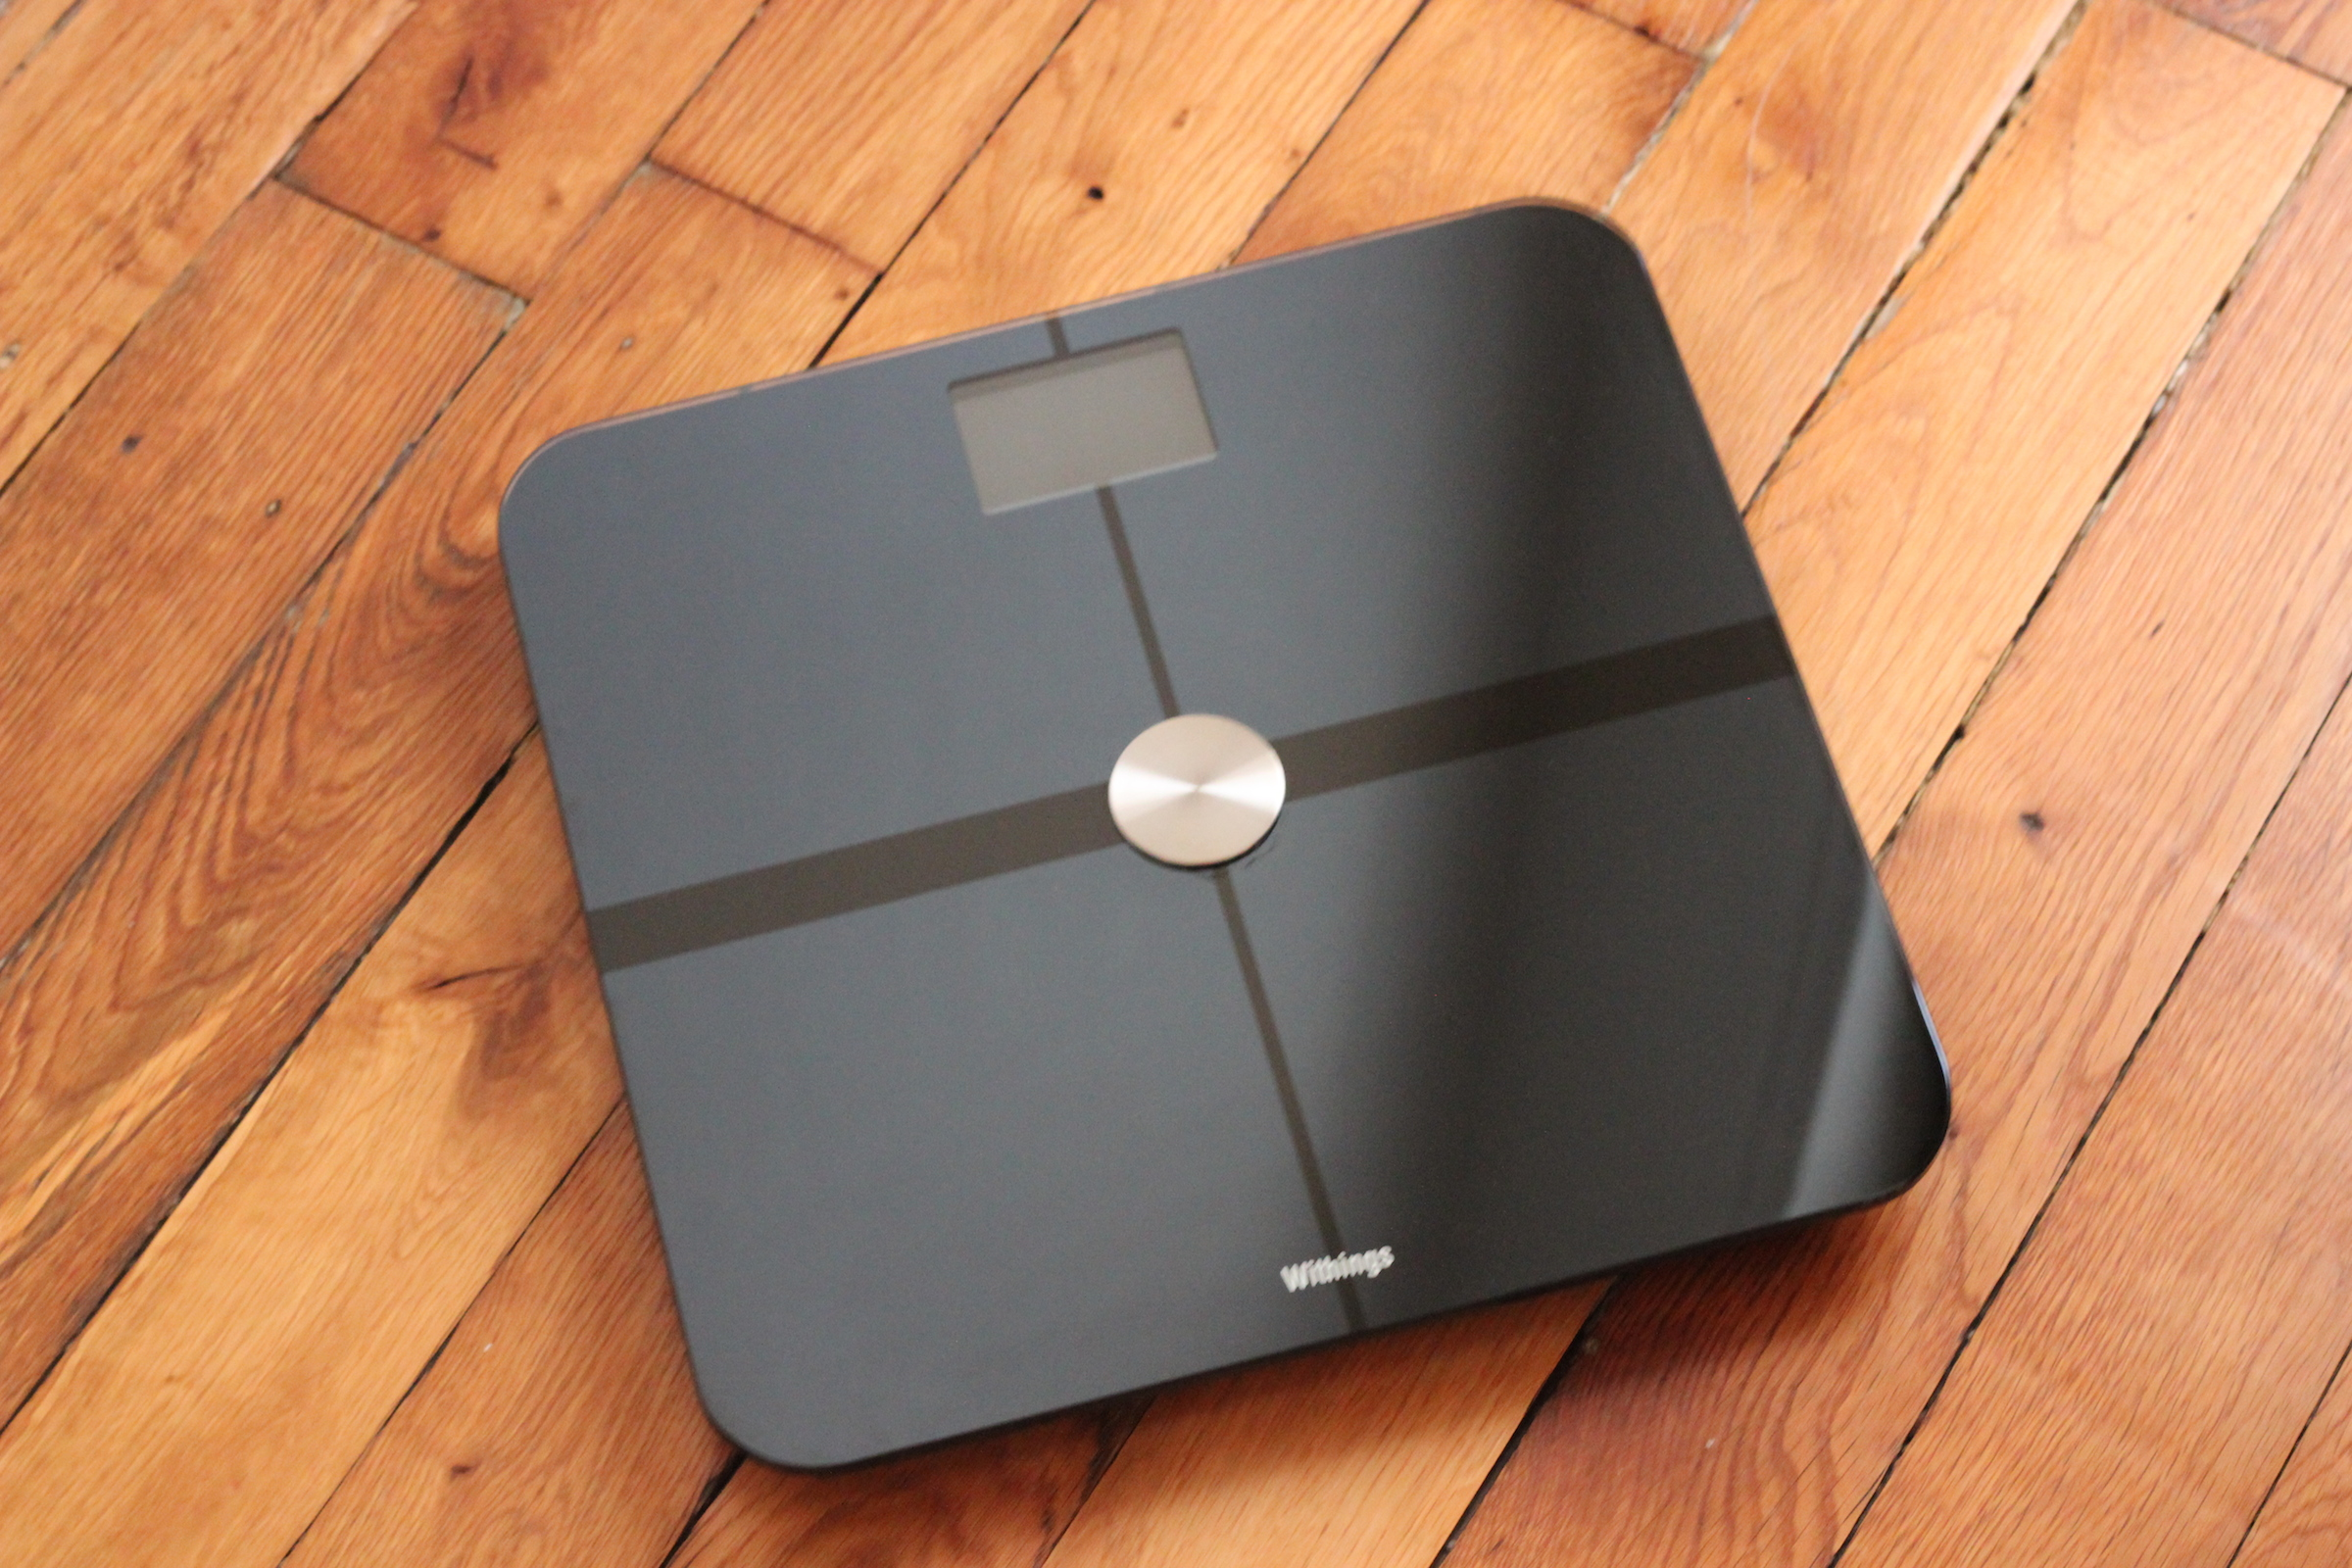 Balance Masse Musculaire La Nouvelle Balance Connectée Withings Helloconnection